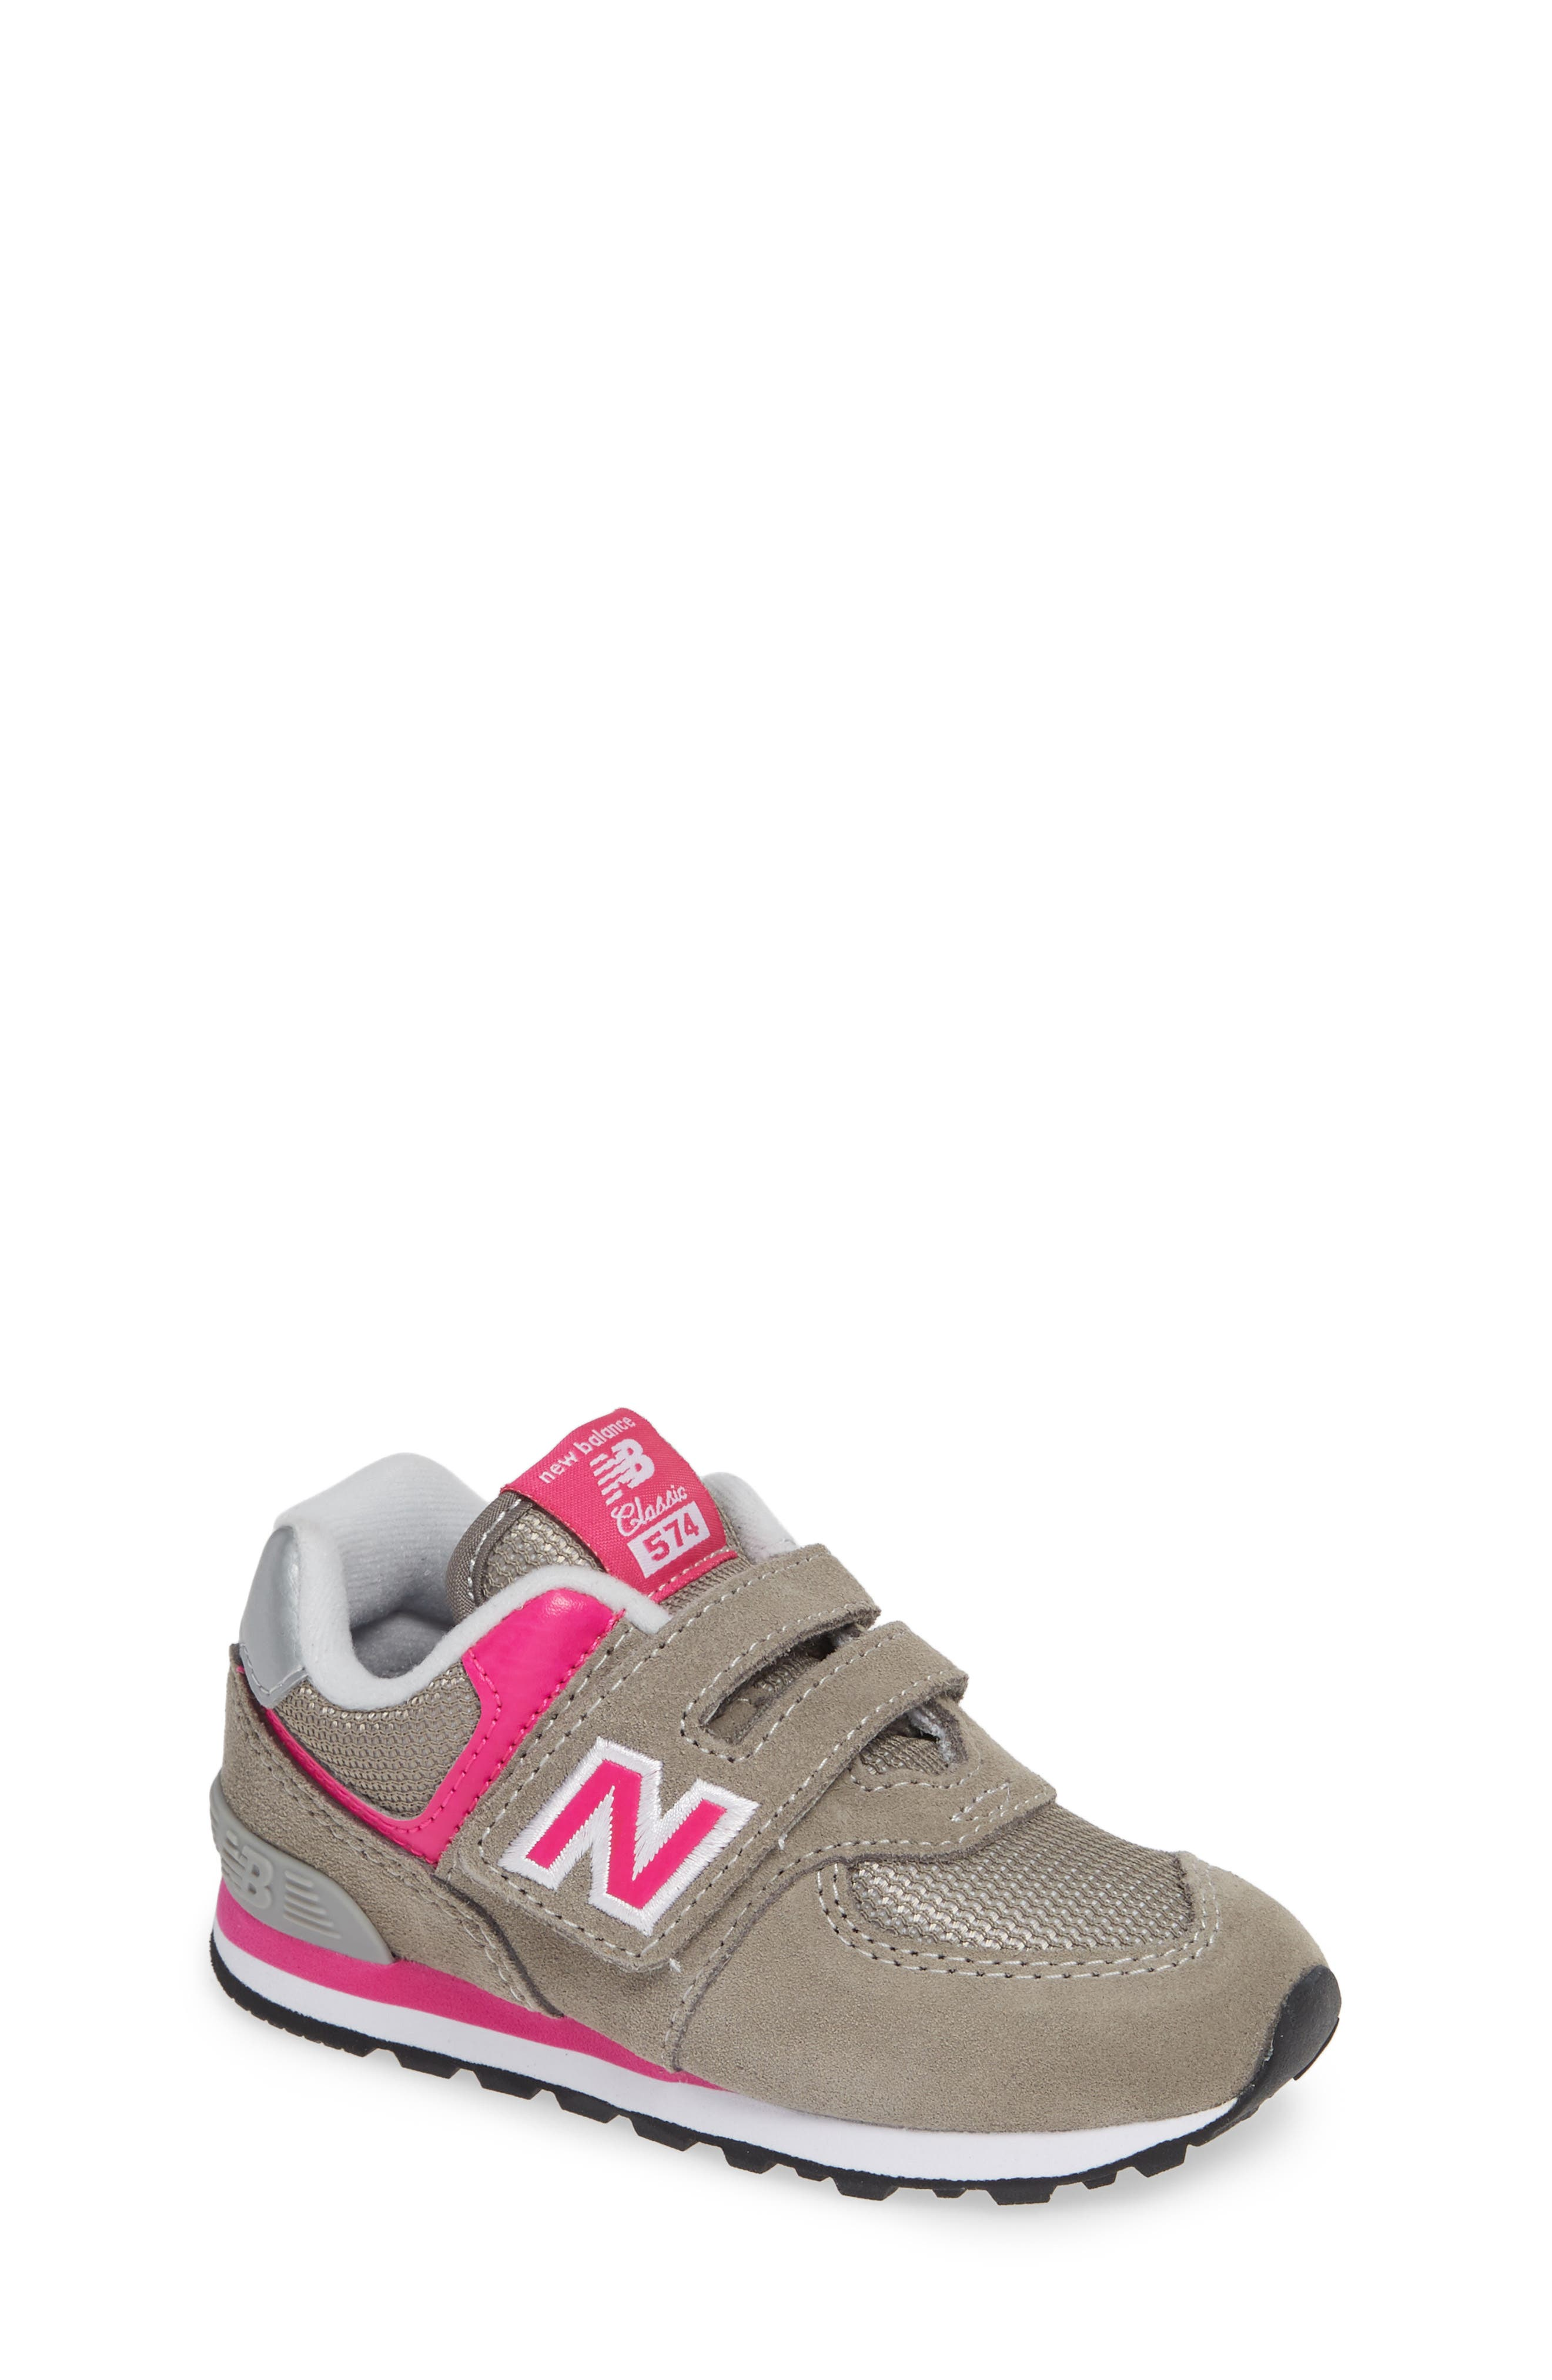 0324138e887e8f New Balance Kids  Shoes